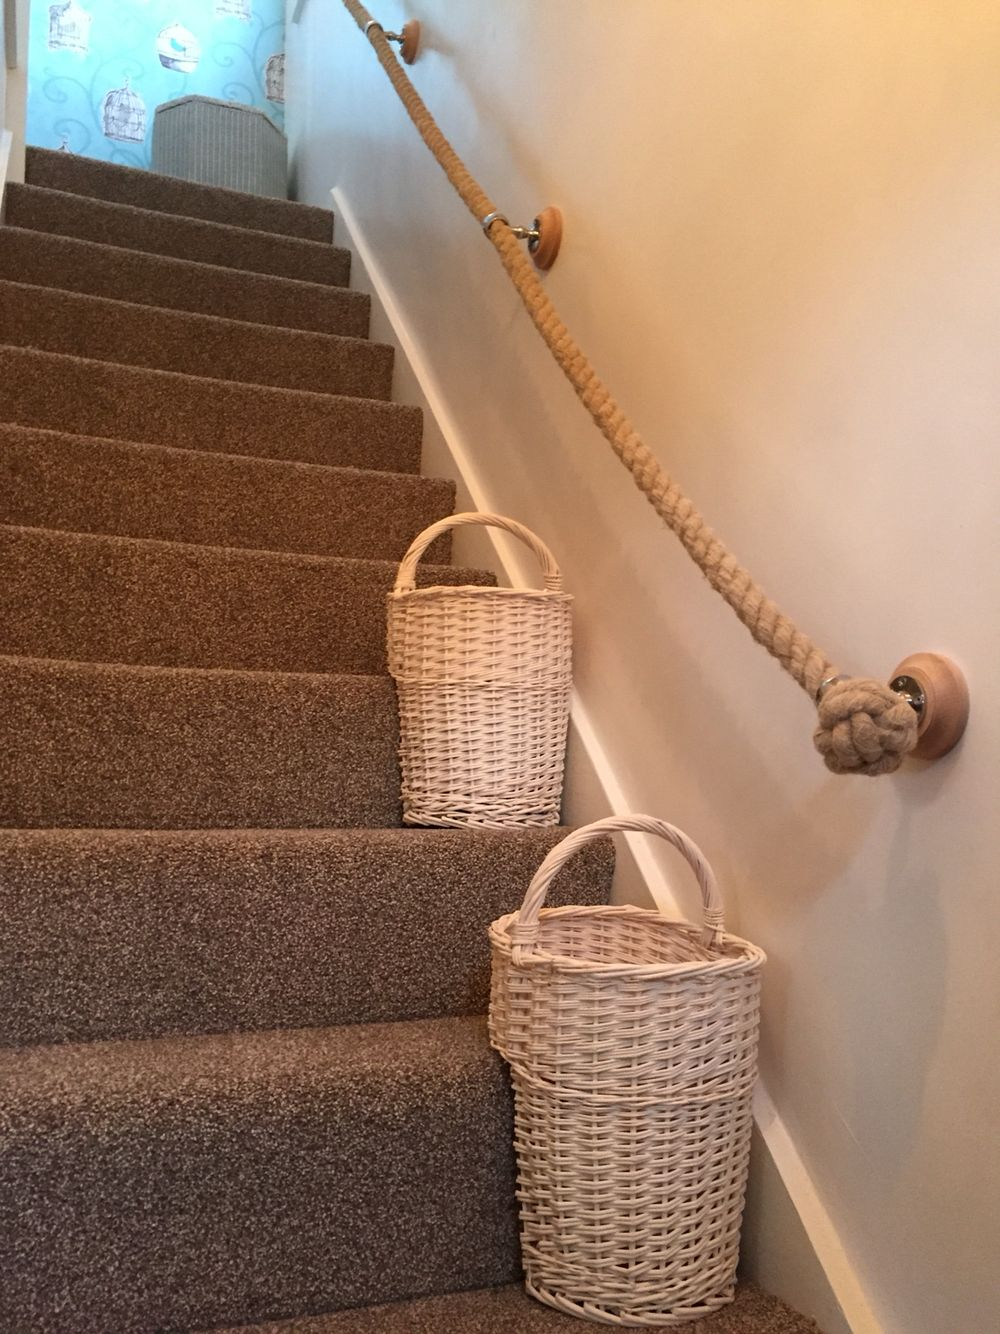 Best Rope Handrail And Stairs Baskets Stair Basket Stair 400 x 300